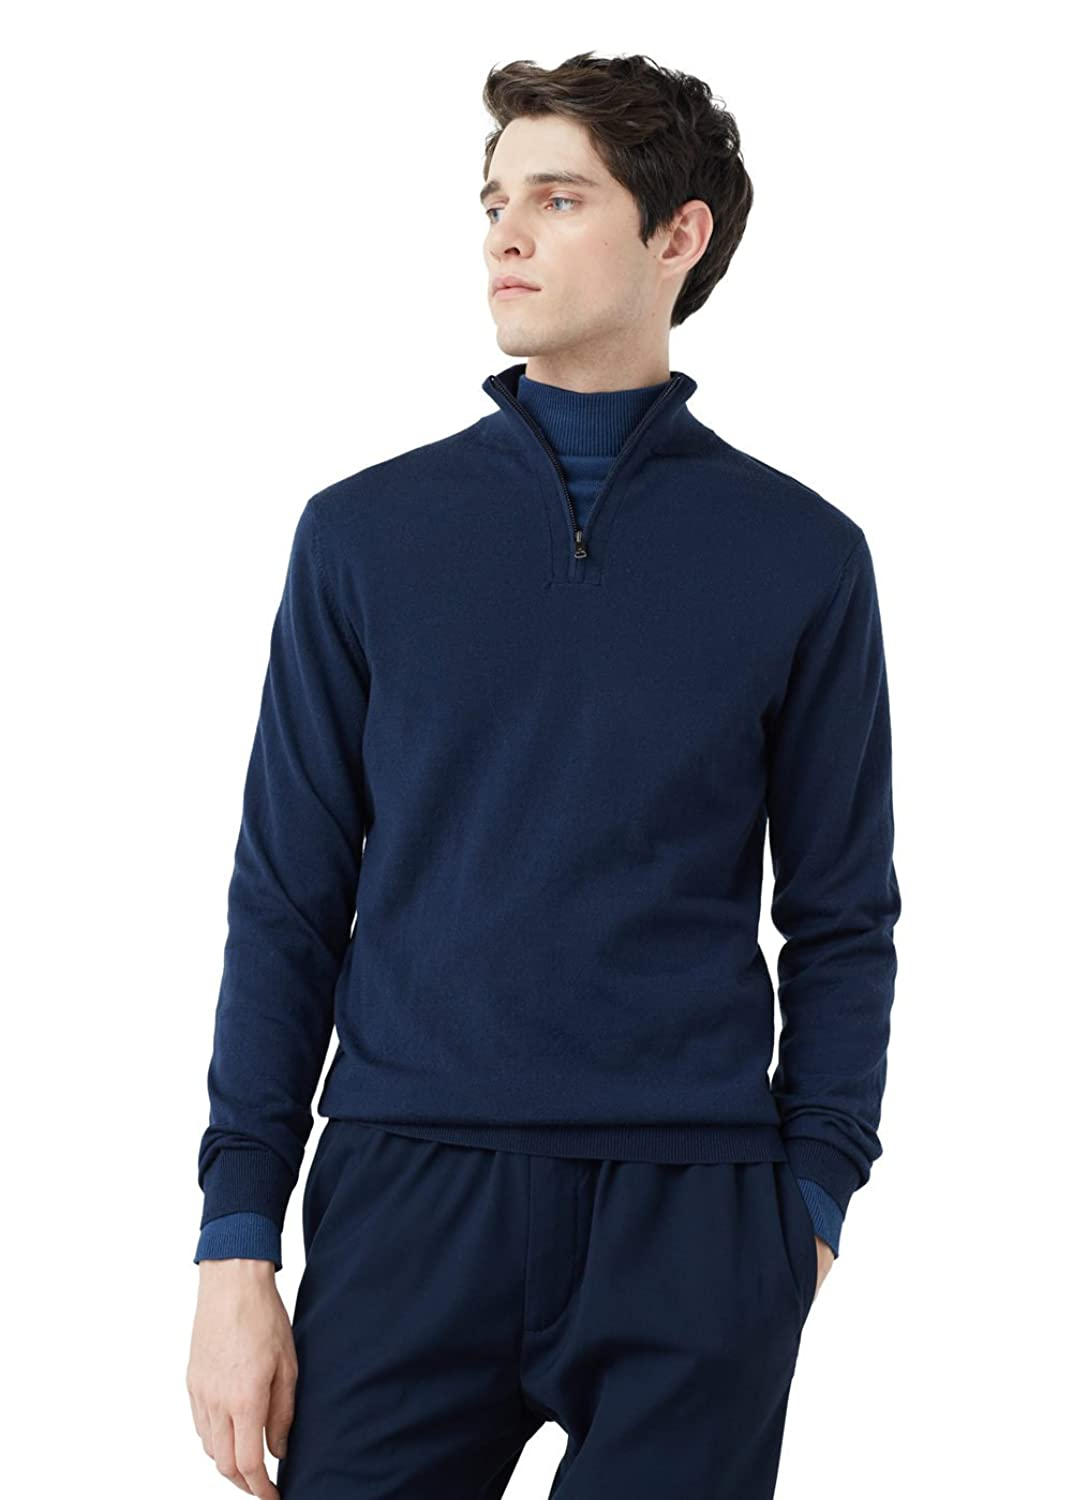 MANGO MAN - Cotton cashmere-blend cardigan - Size:L - Color:Navy